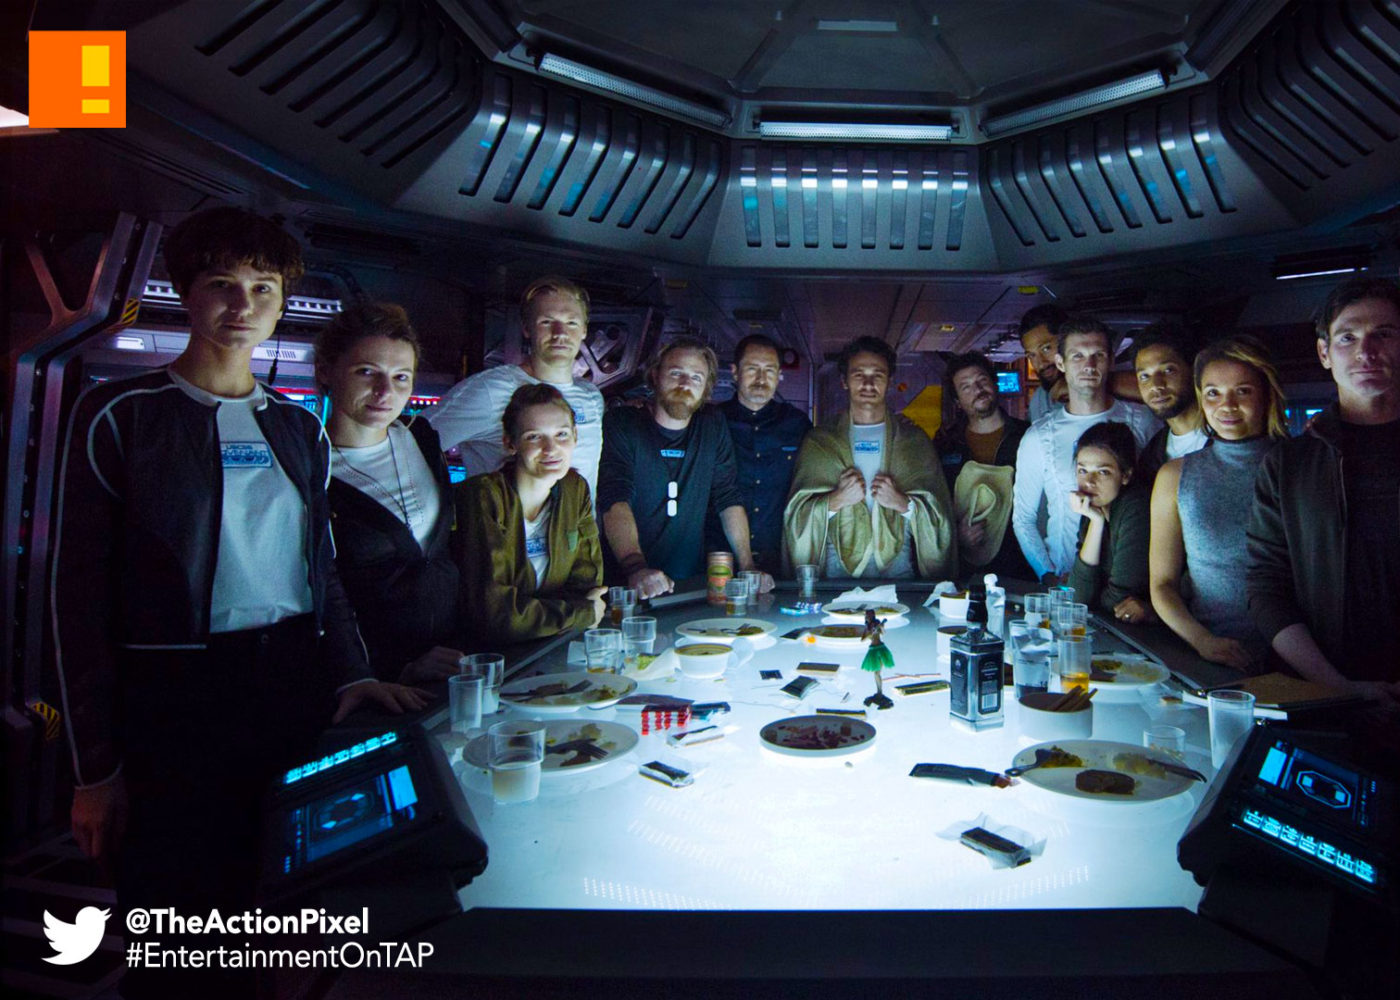 alien: covenant,alien: covenant, alien, covenant, ridley scott, neomorph, xenomorph, entertainment on tap, the action pixel, Katherine Waterson, Michael Fassbender, Katherine Waterston, Billy Crudup, Danny McBride, Demián Bichir, Carmen Ejogo, Amy Seimetz, Jussie Smollett, Callie Hernandez, Nathaniel Dean, Alexander England, Benjamin Rigby, 20TH CENTURY FOX, RIDLEY SCOTT,